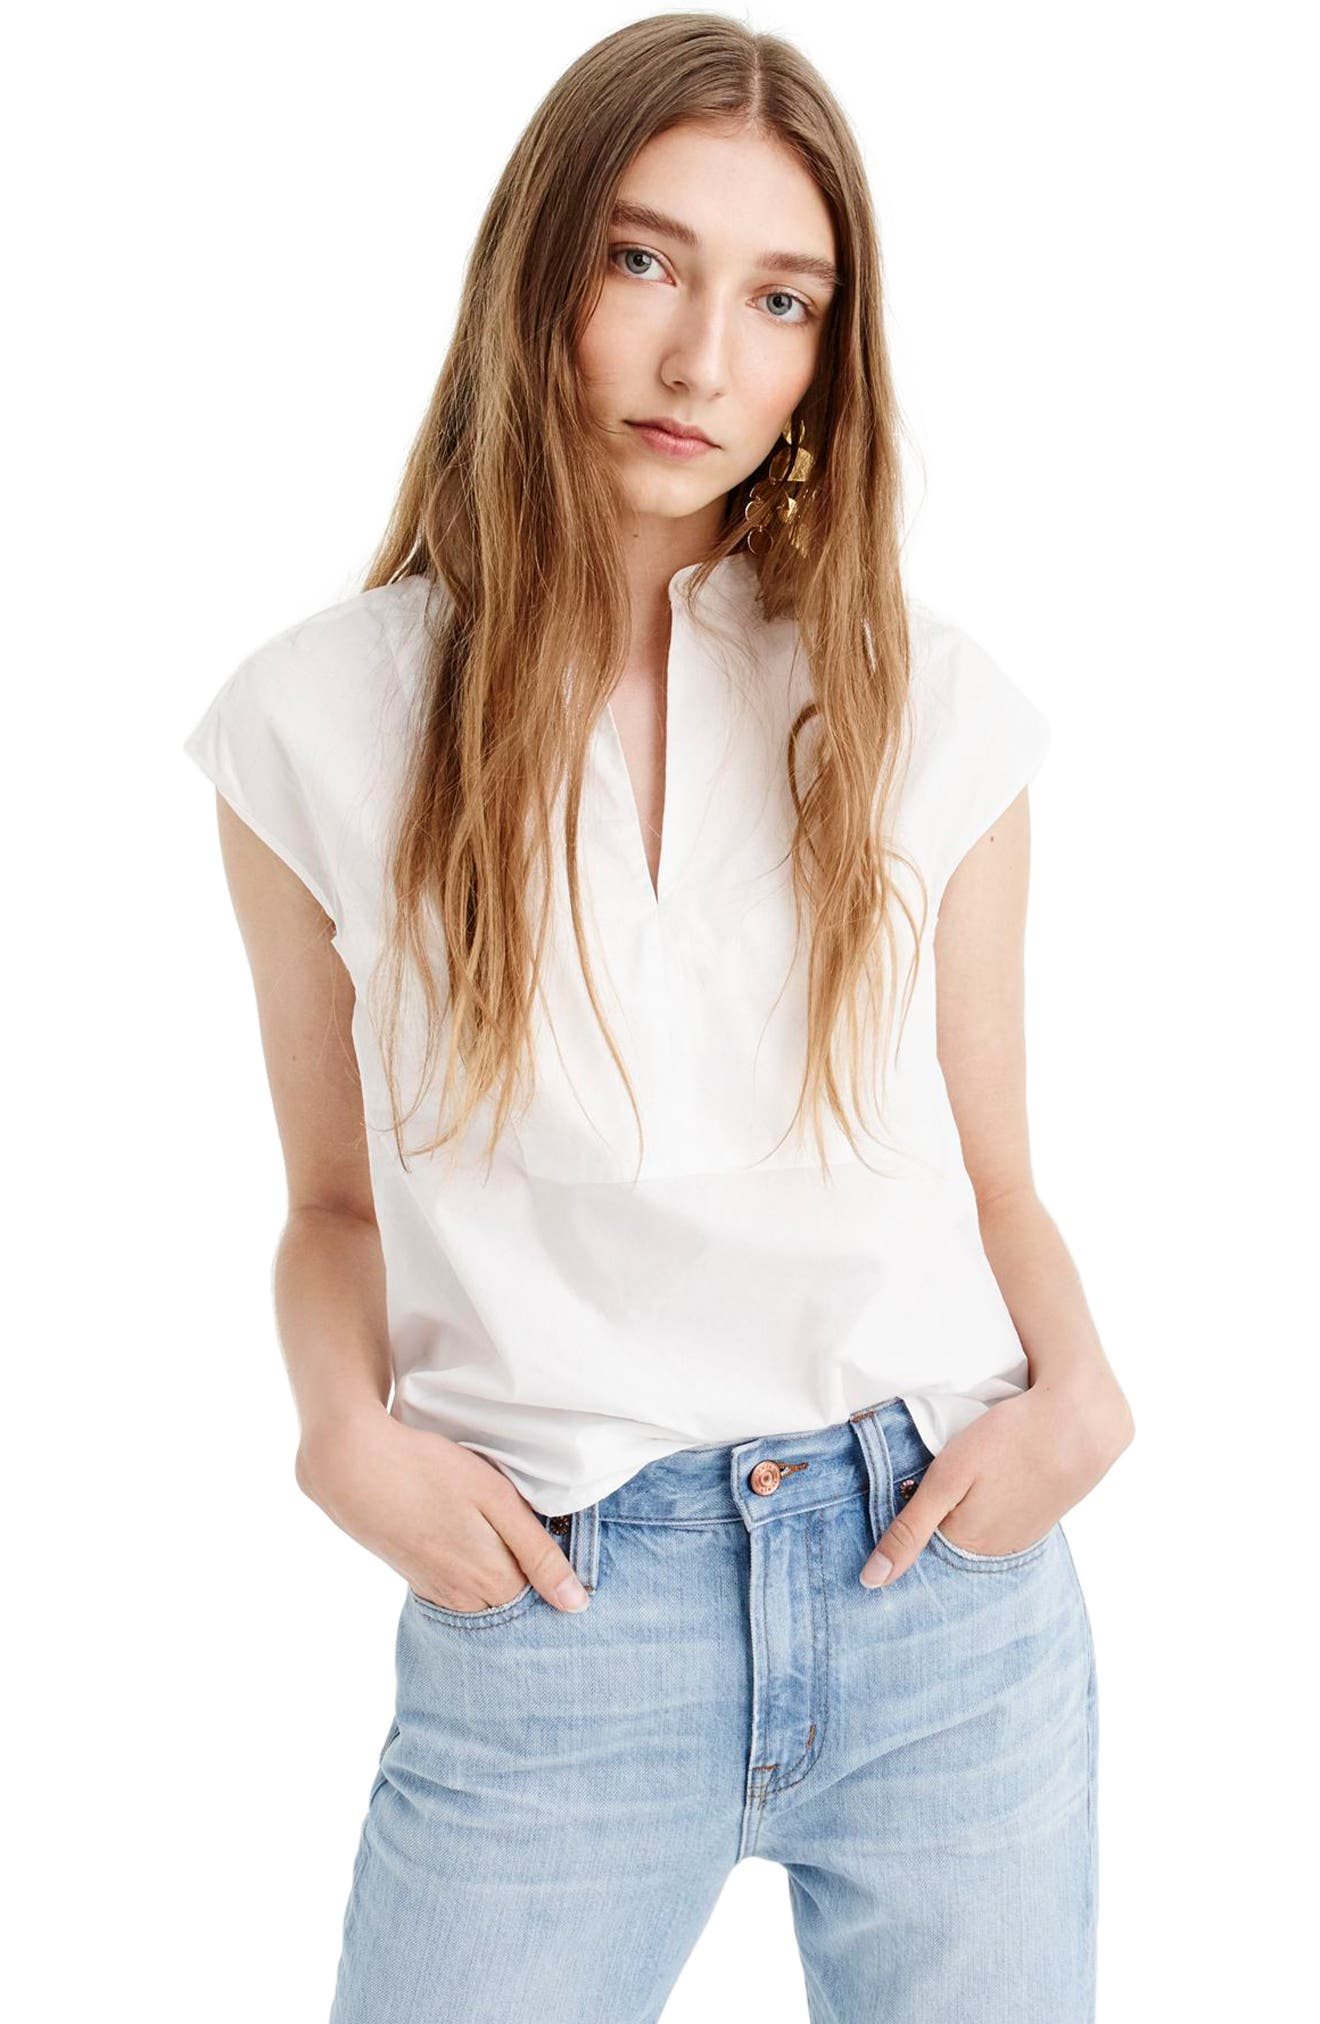 J.Crew Cotton Poplin Cap Sleeve Top